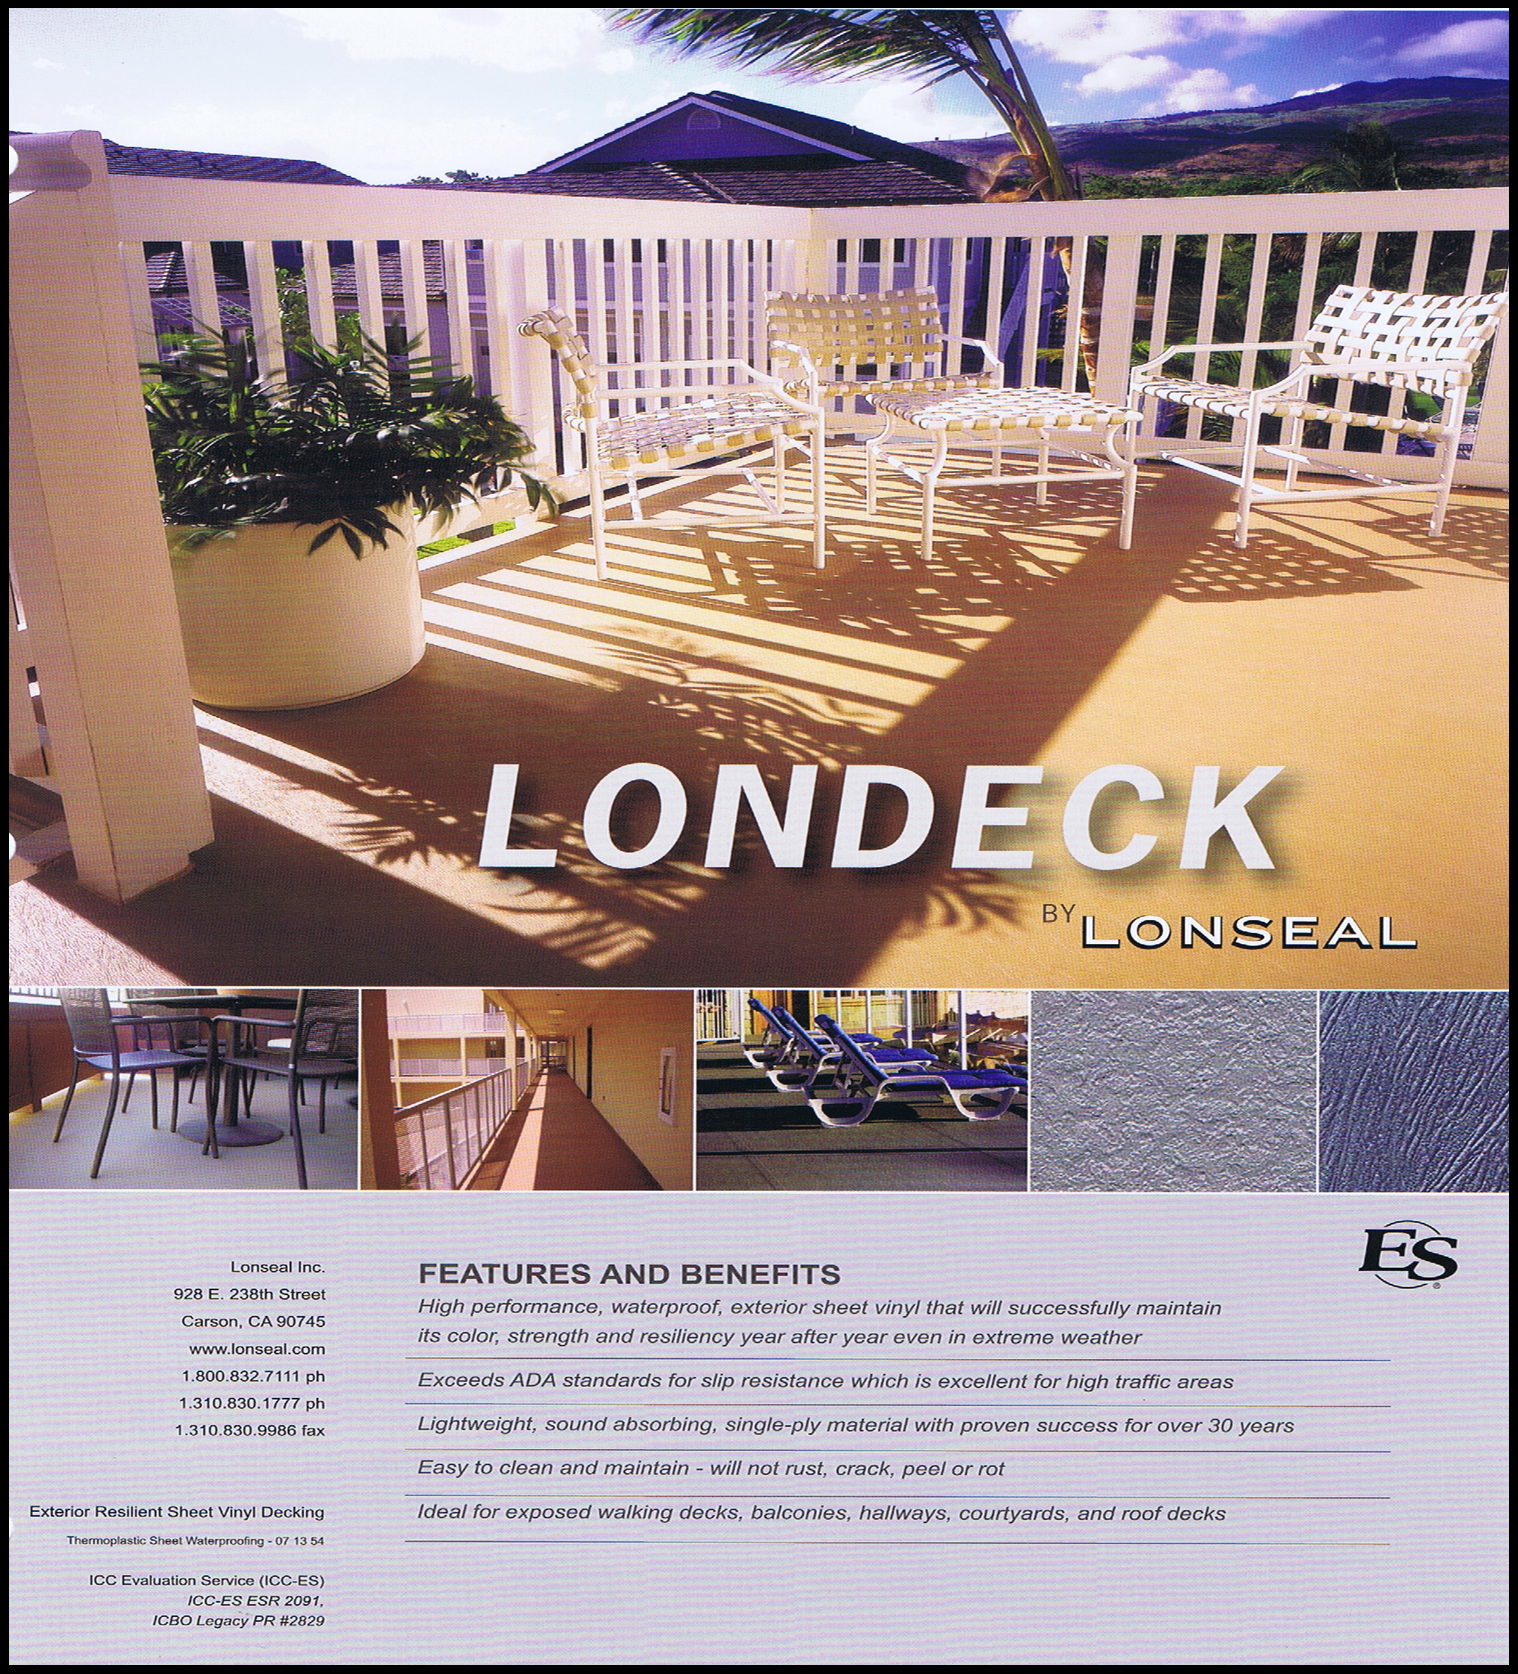 Londeck technical information 1